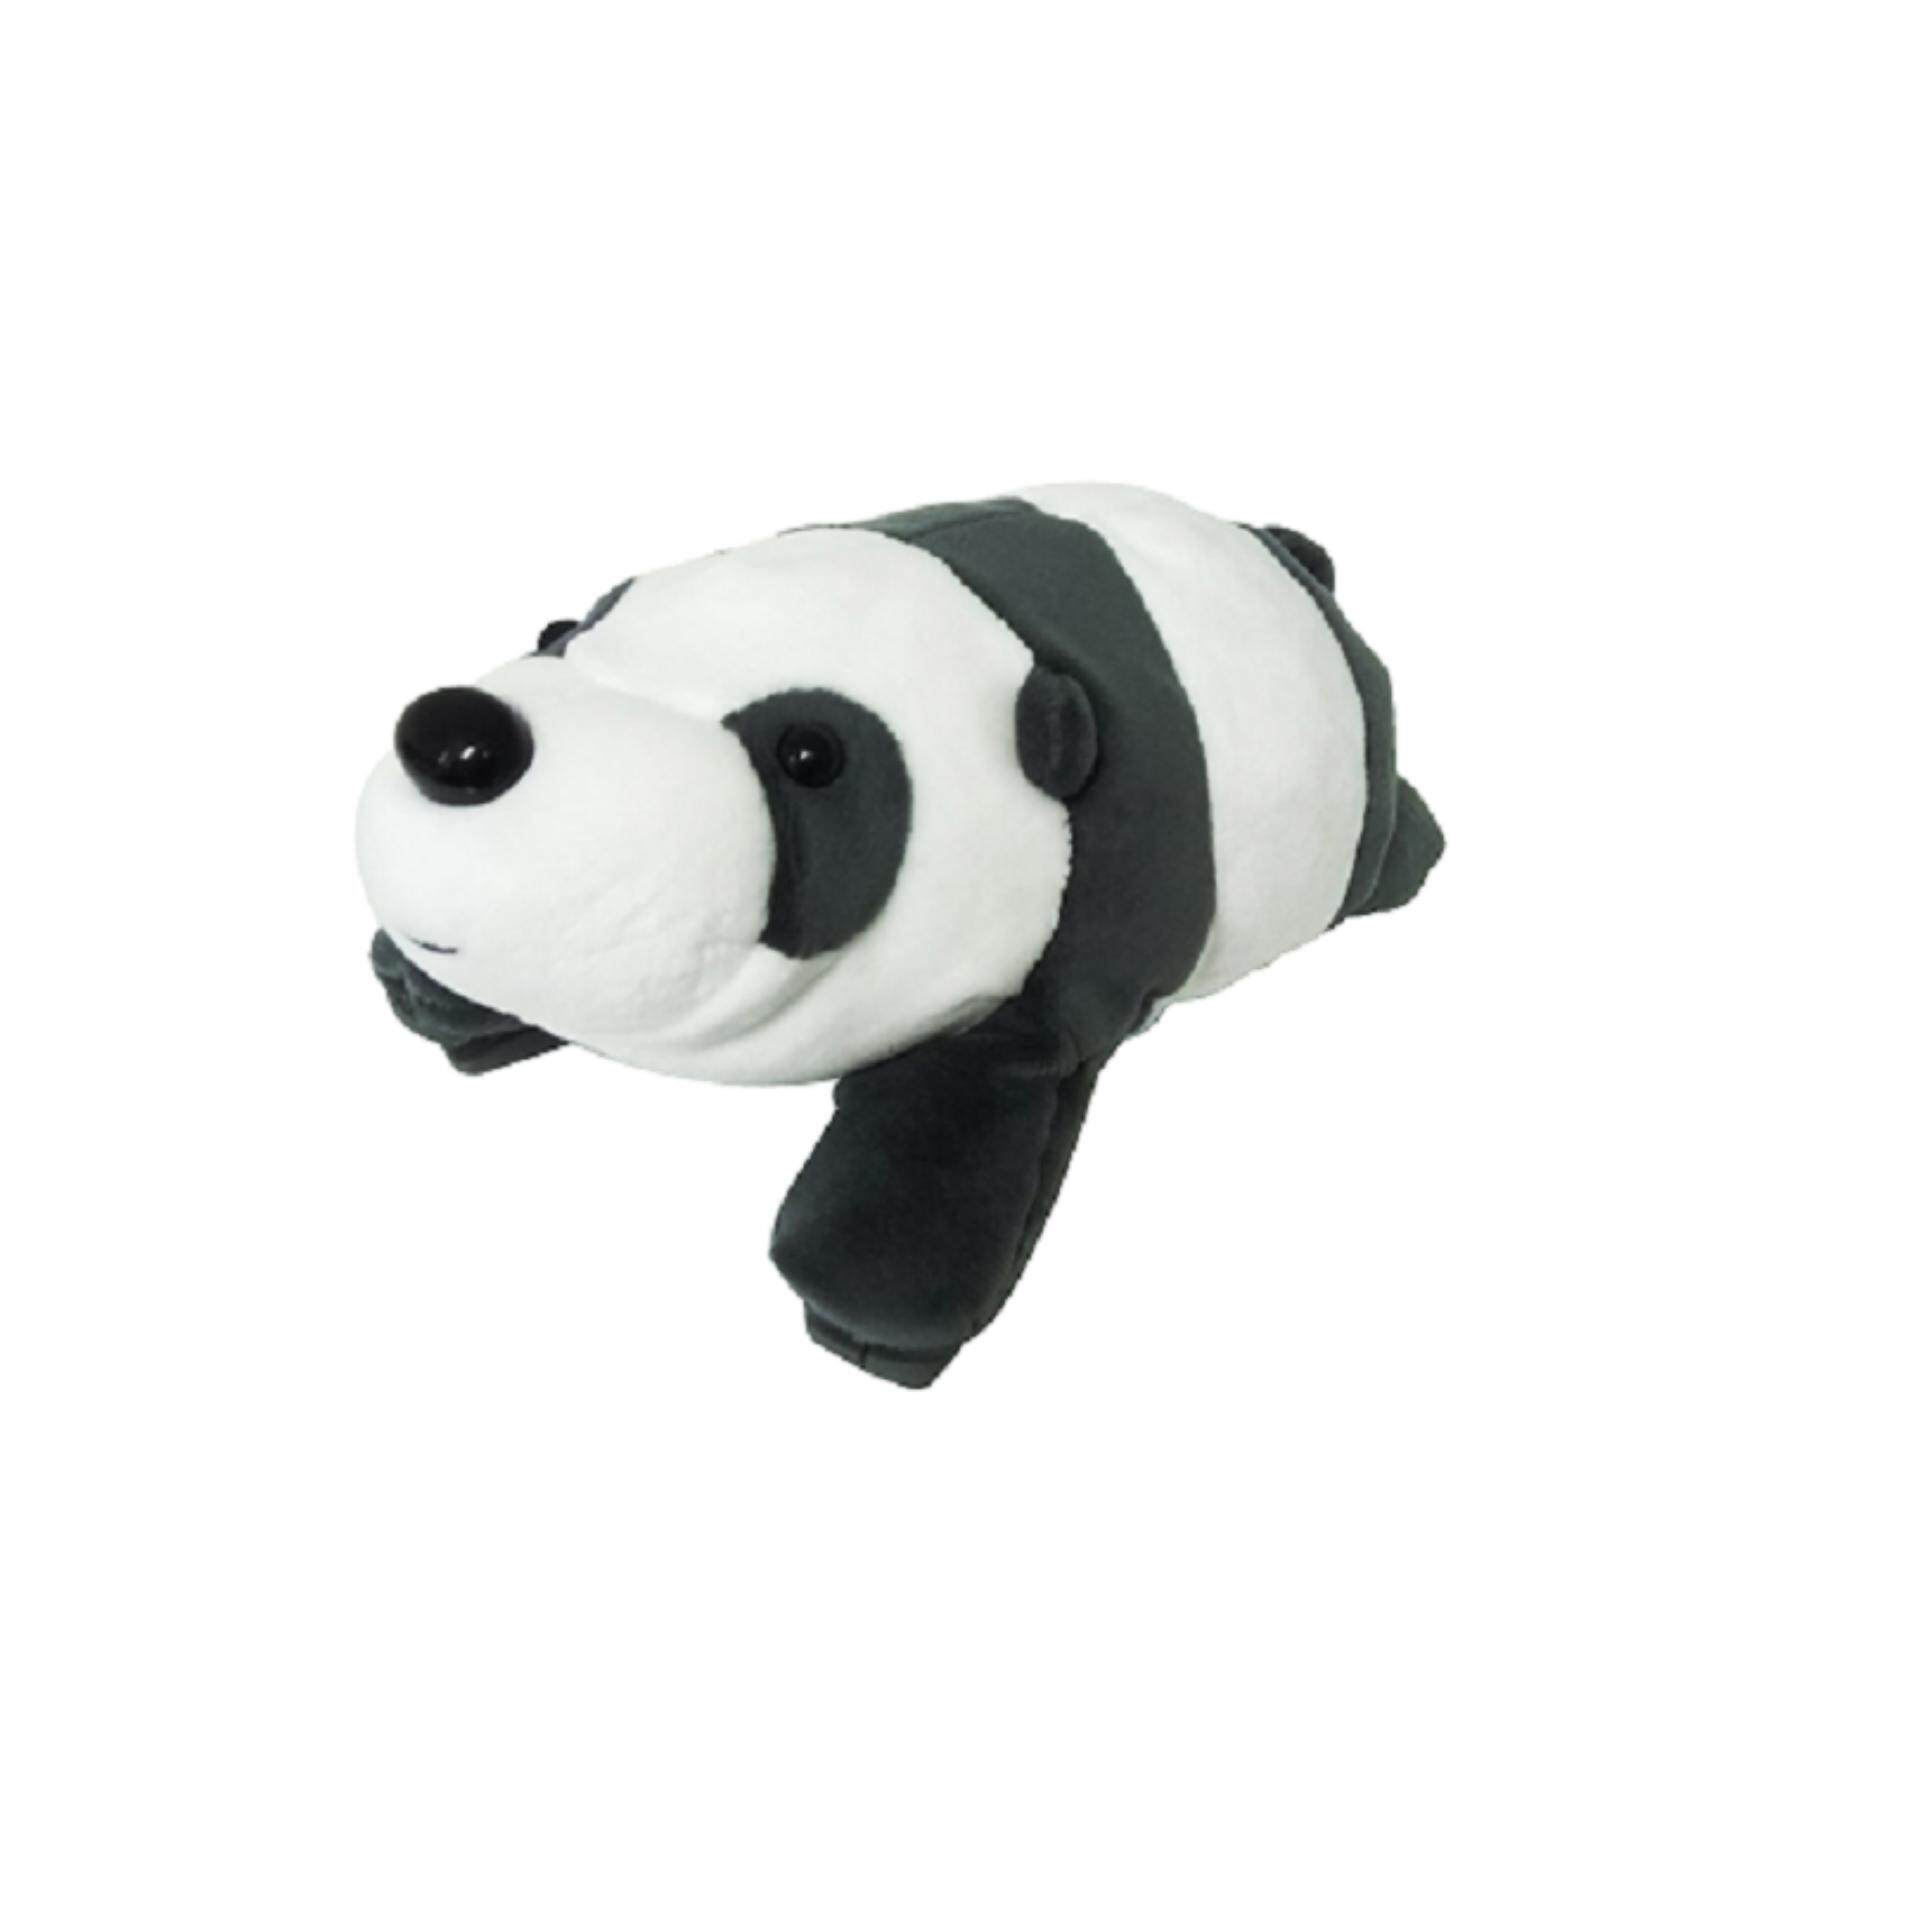 We Bare Bears Clip-On Plush Toy - Panda toys for girls